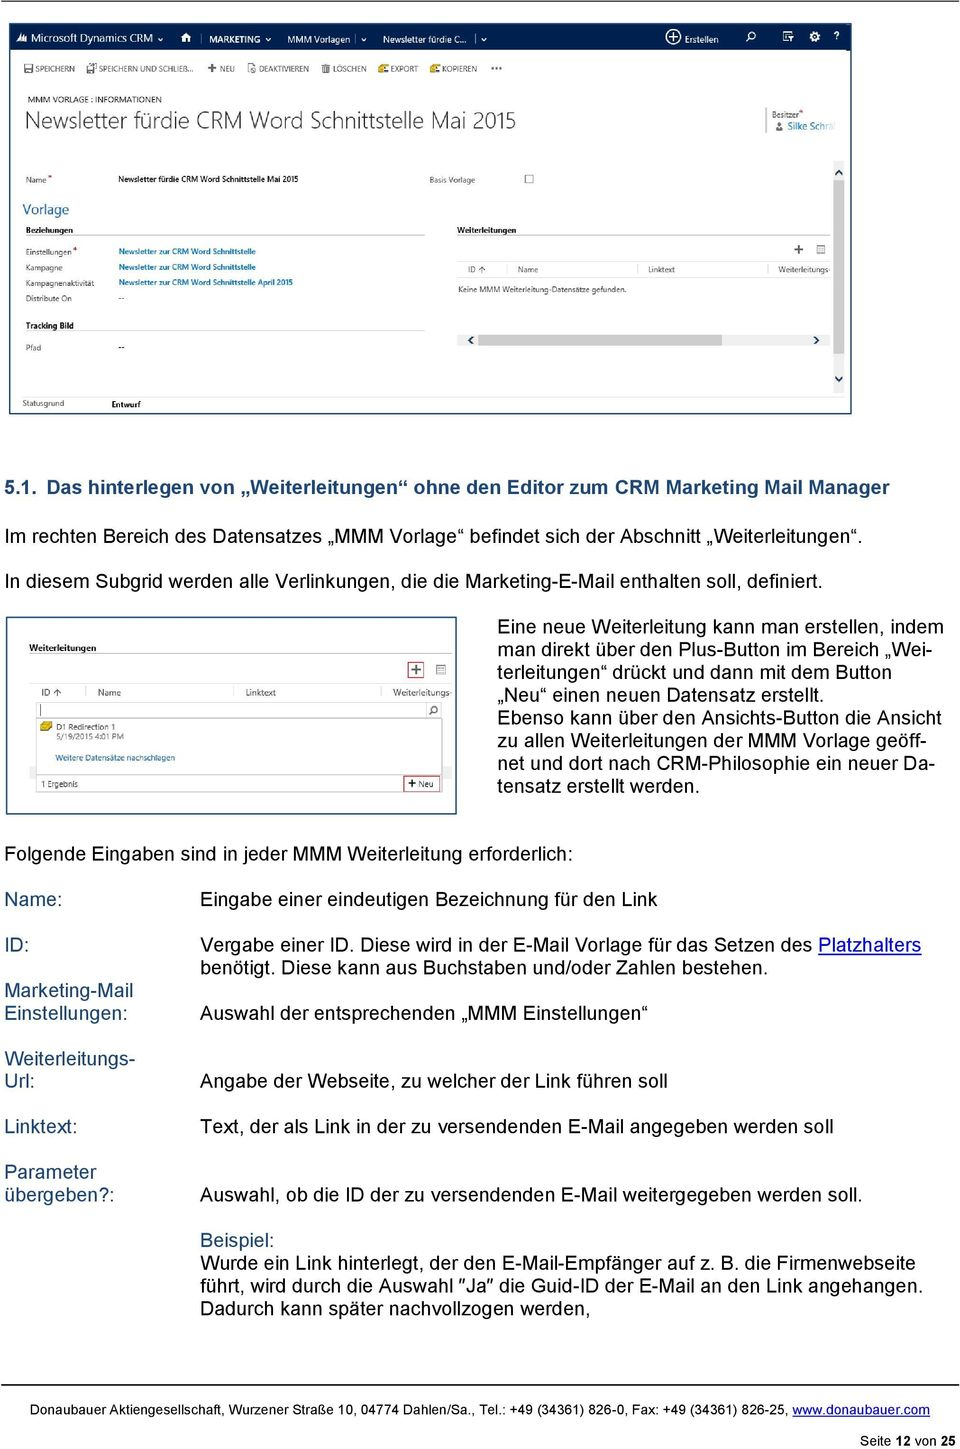 Beste Sonderangebot E Mail Vorlage Bilder - Entry Level Resume ...